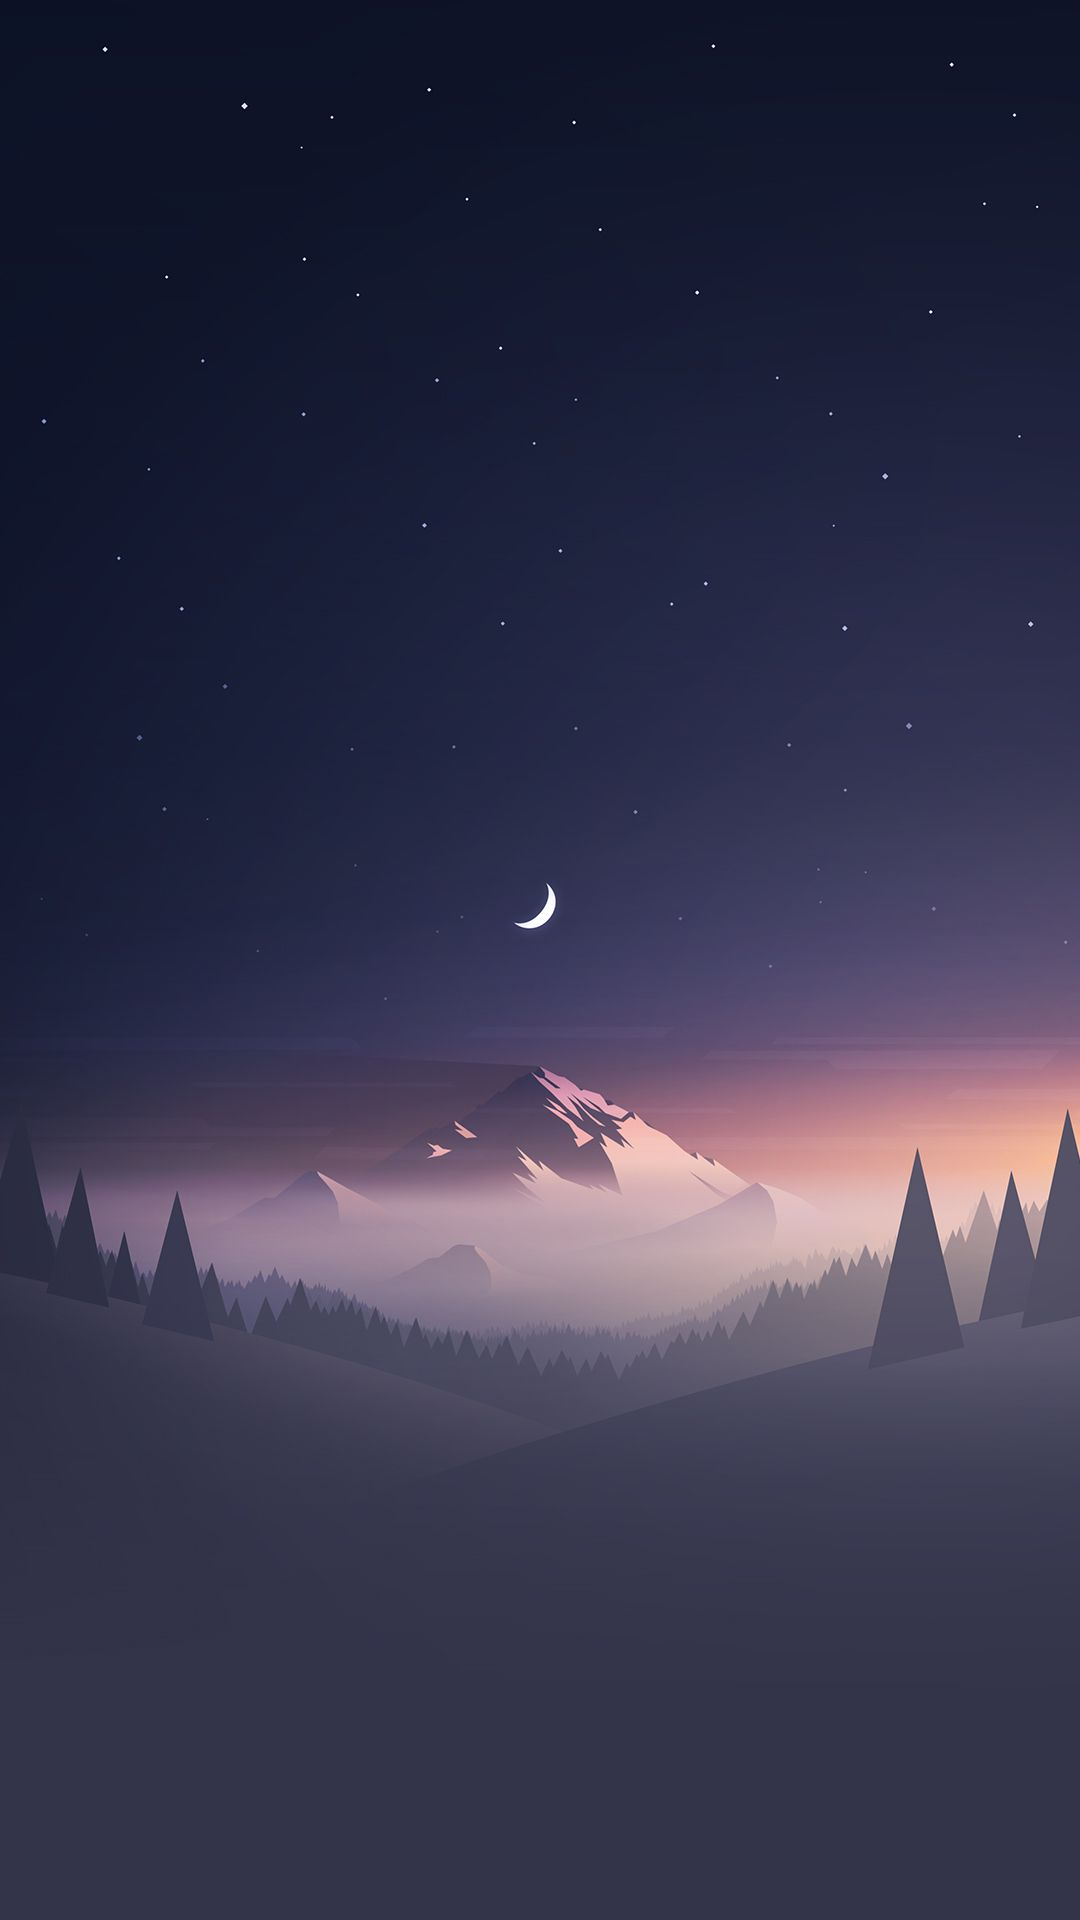 Iphone Full Hd Love Wallpaper : Stars And Moon Winter Mountain Landscape #iPhone #6 # ...